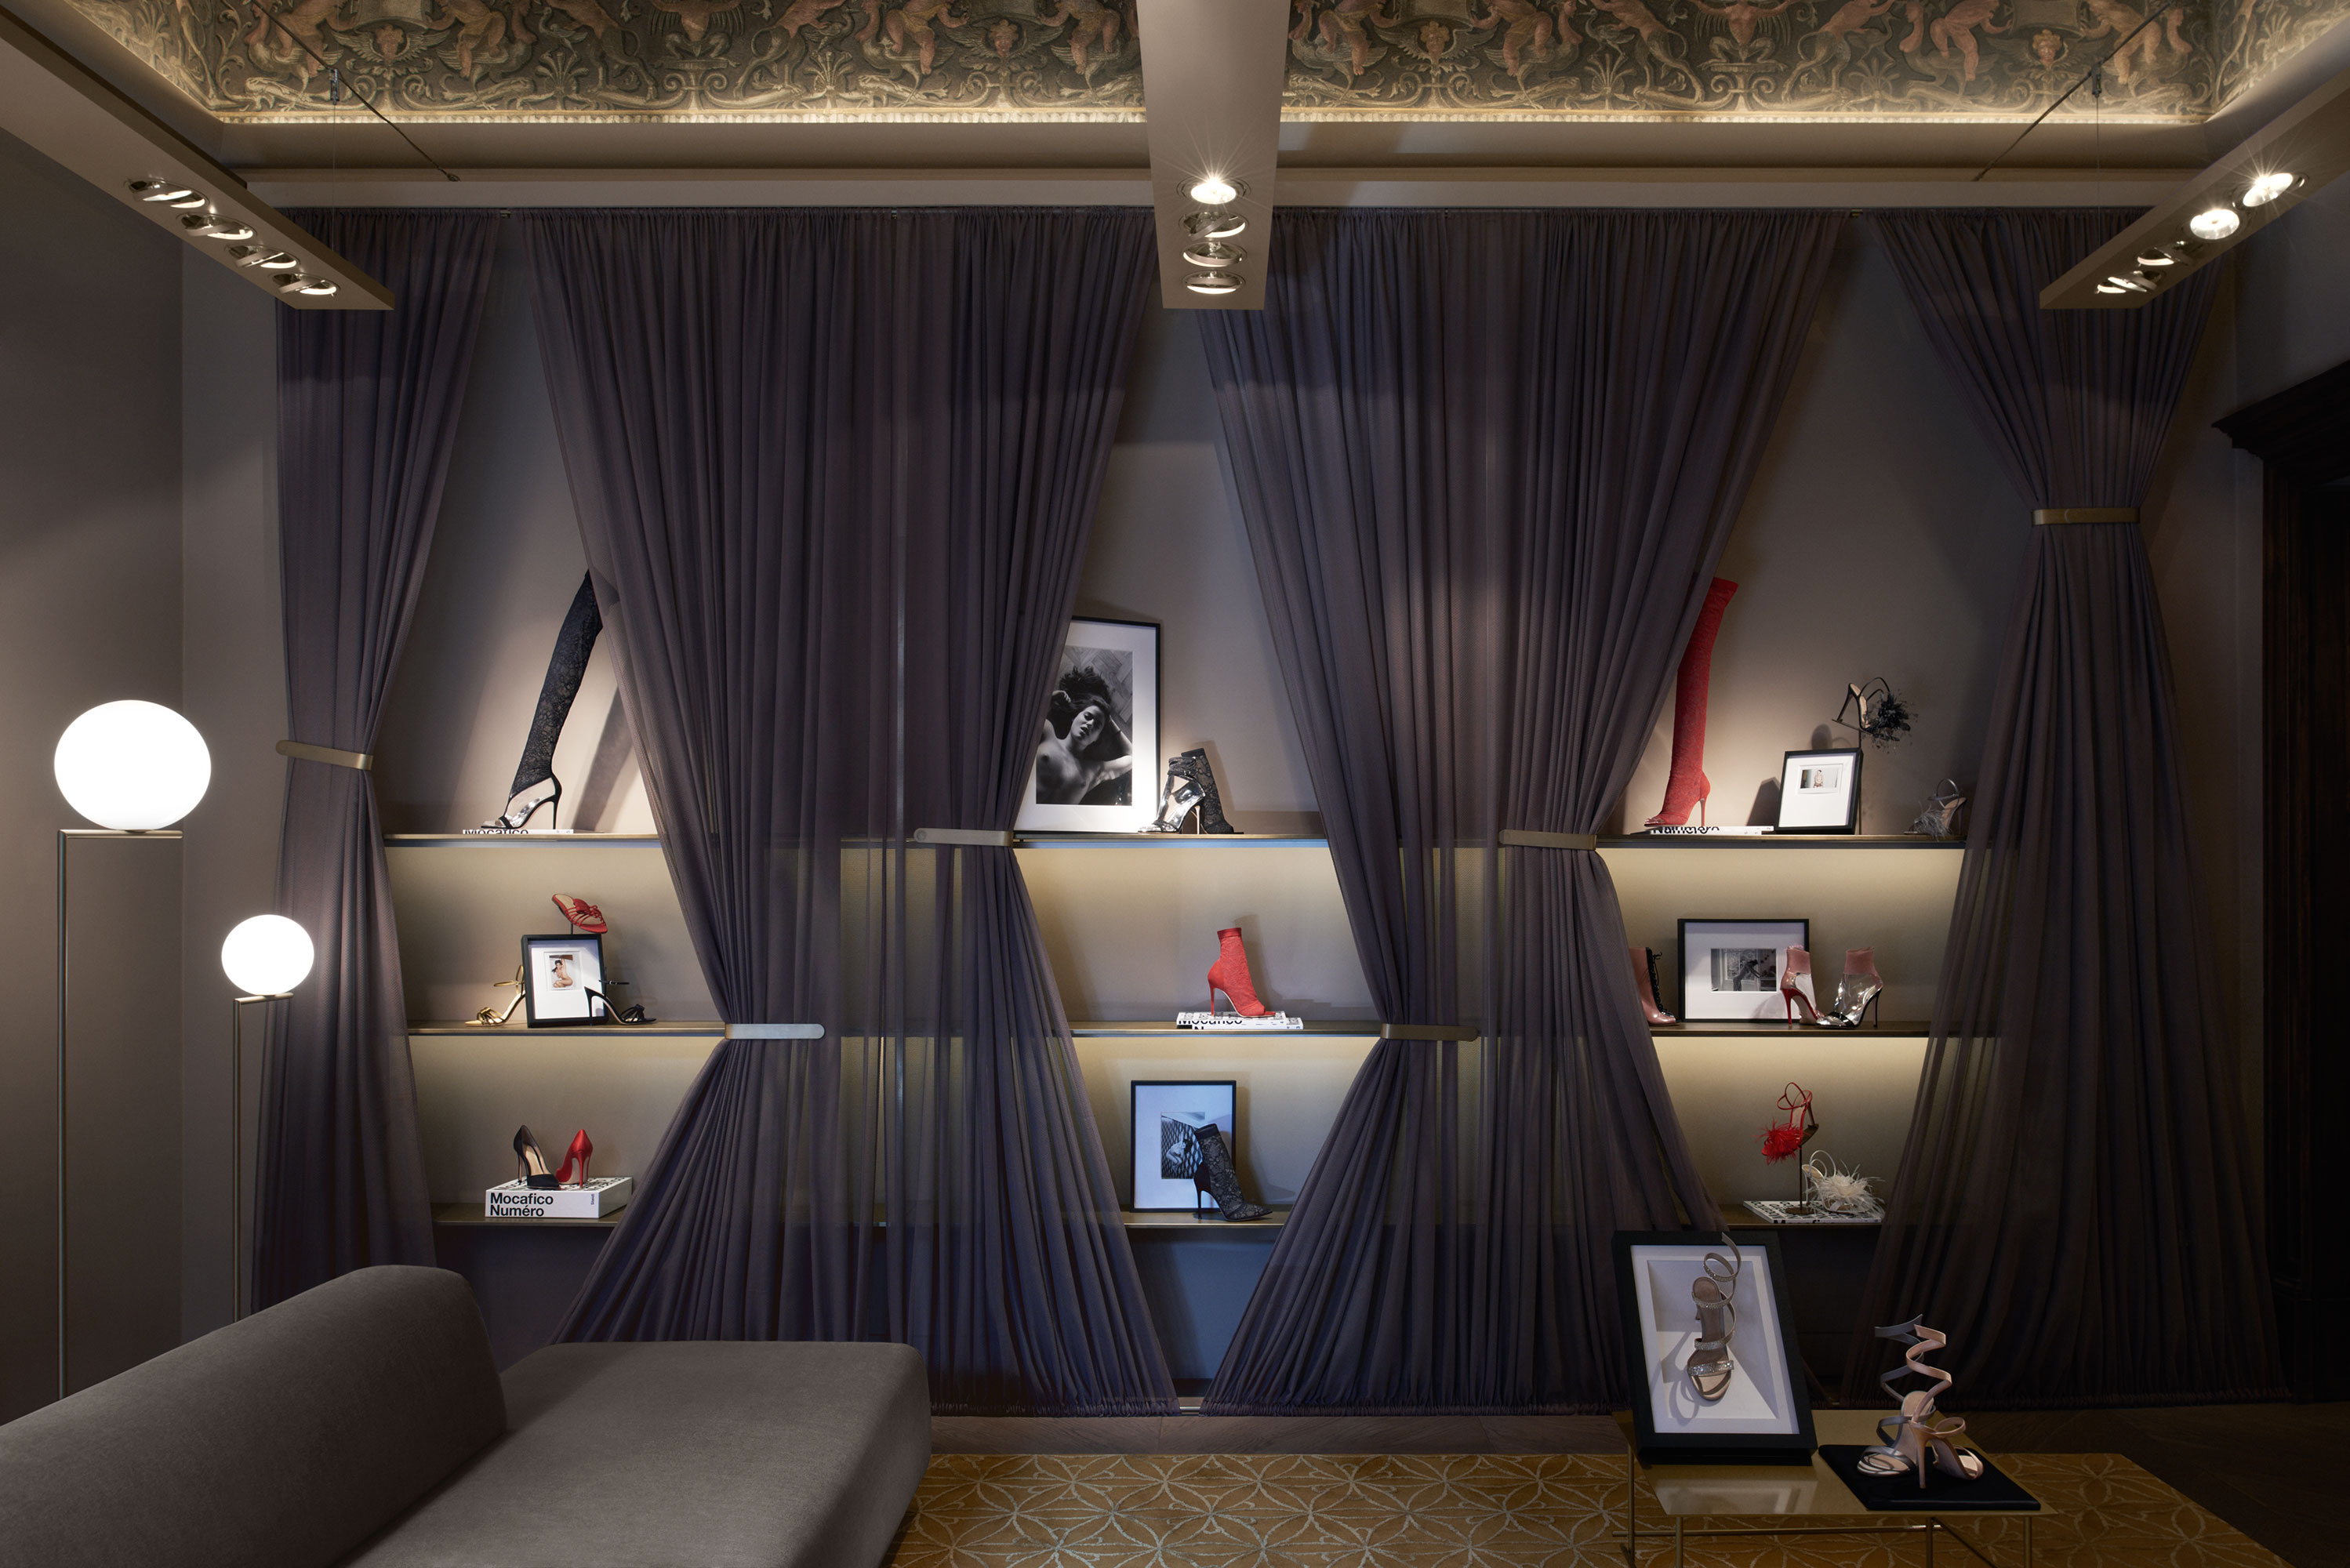 Gianvito Rossi boutique in Milan 2018 | Paola Pansini | gianvito rossi | Numerique Retouch Photo Retouching Studio